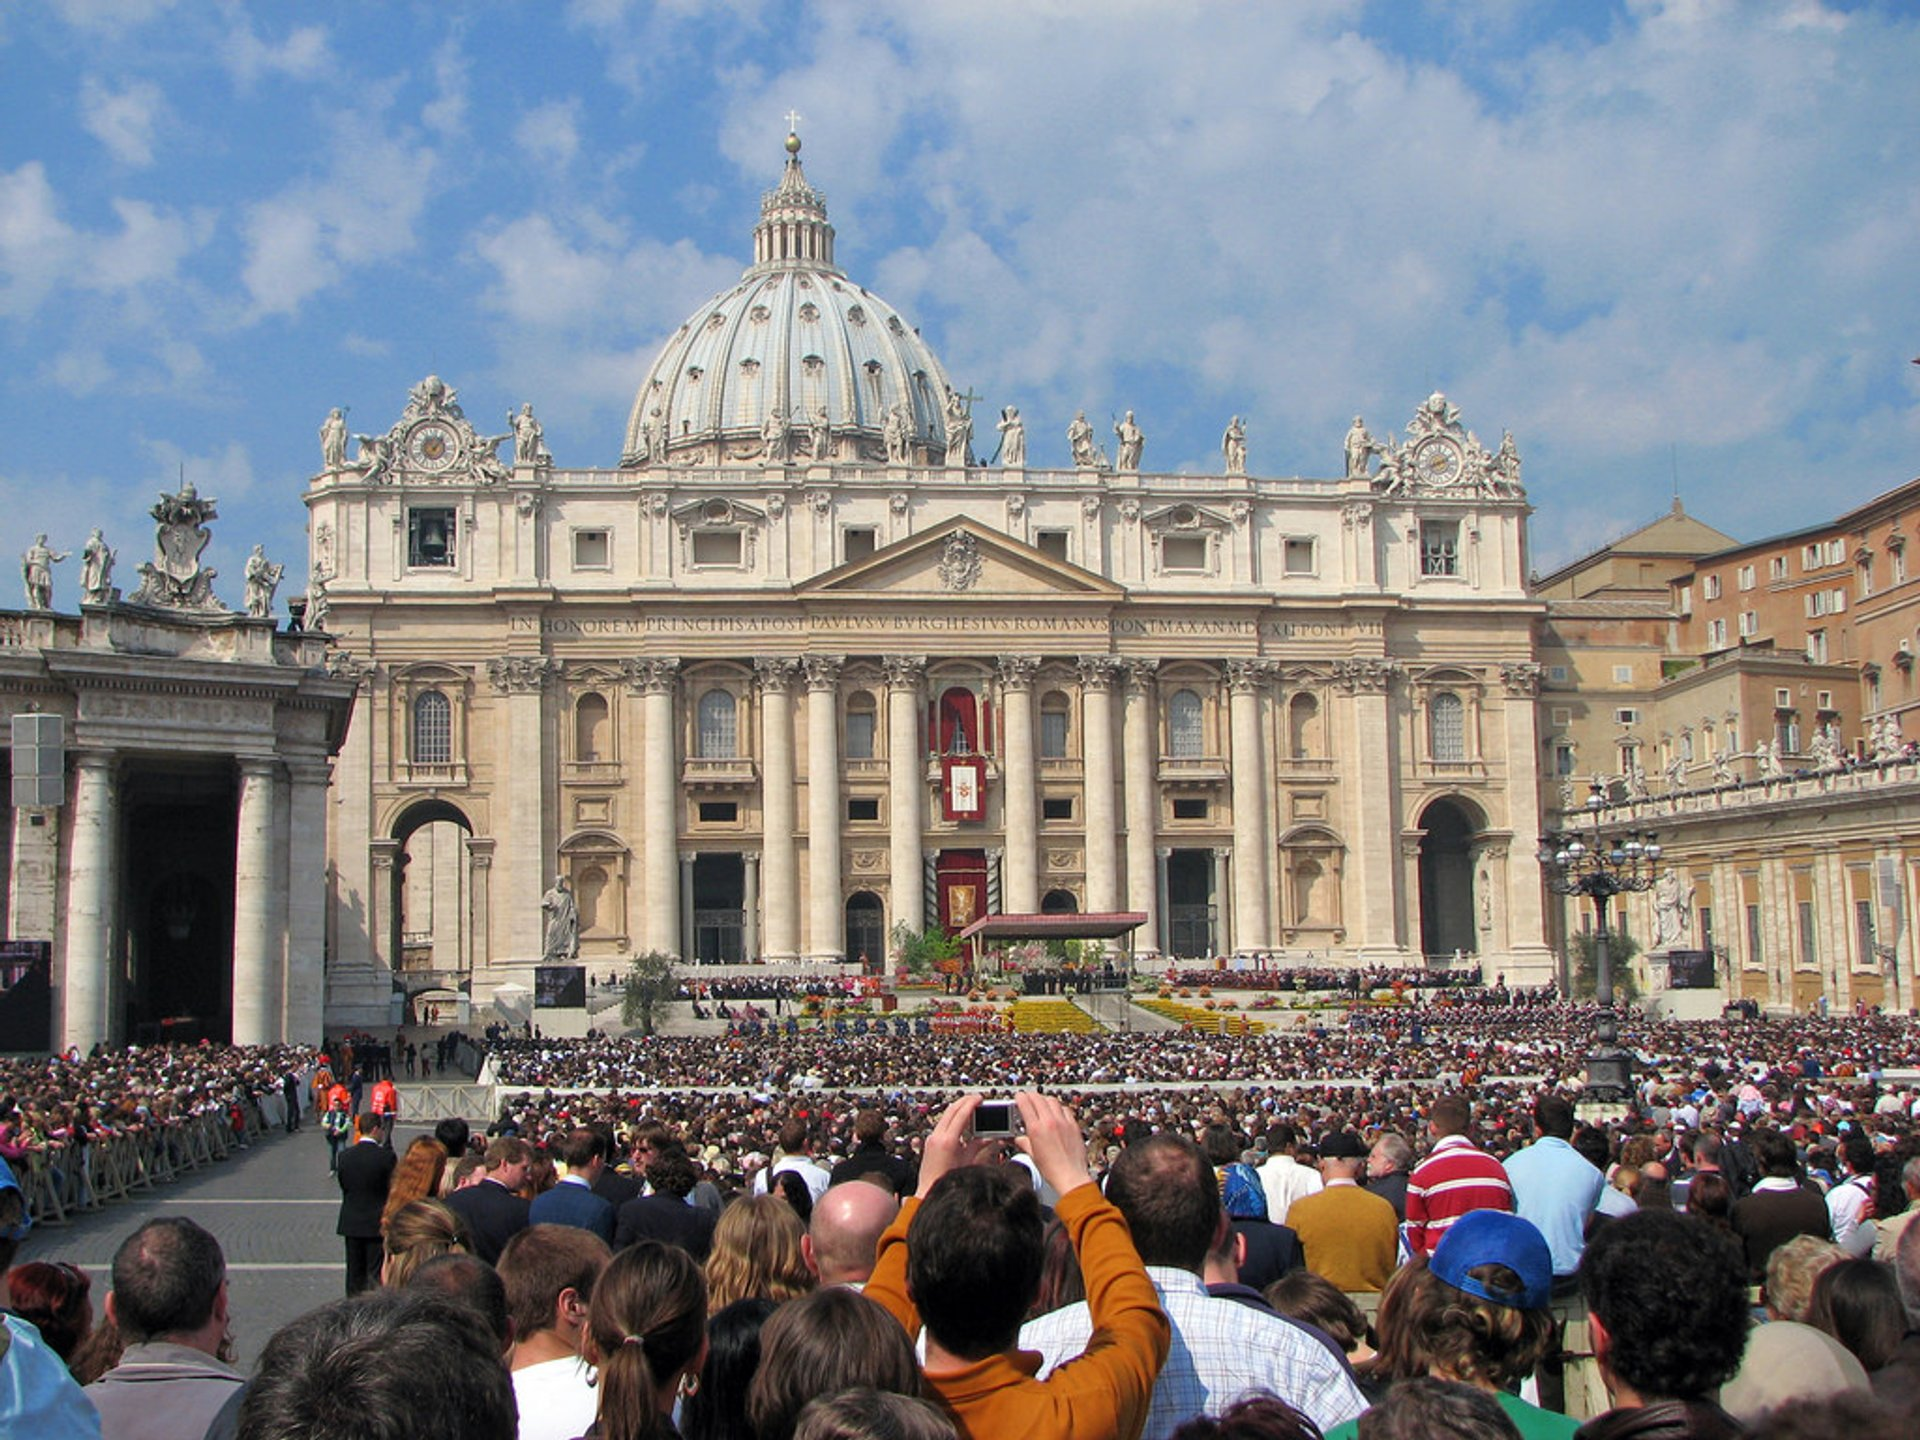 Settimana Santa (Holy Week) & Easter in Rome 2020 - Best Time